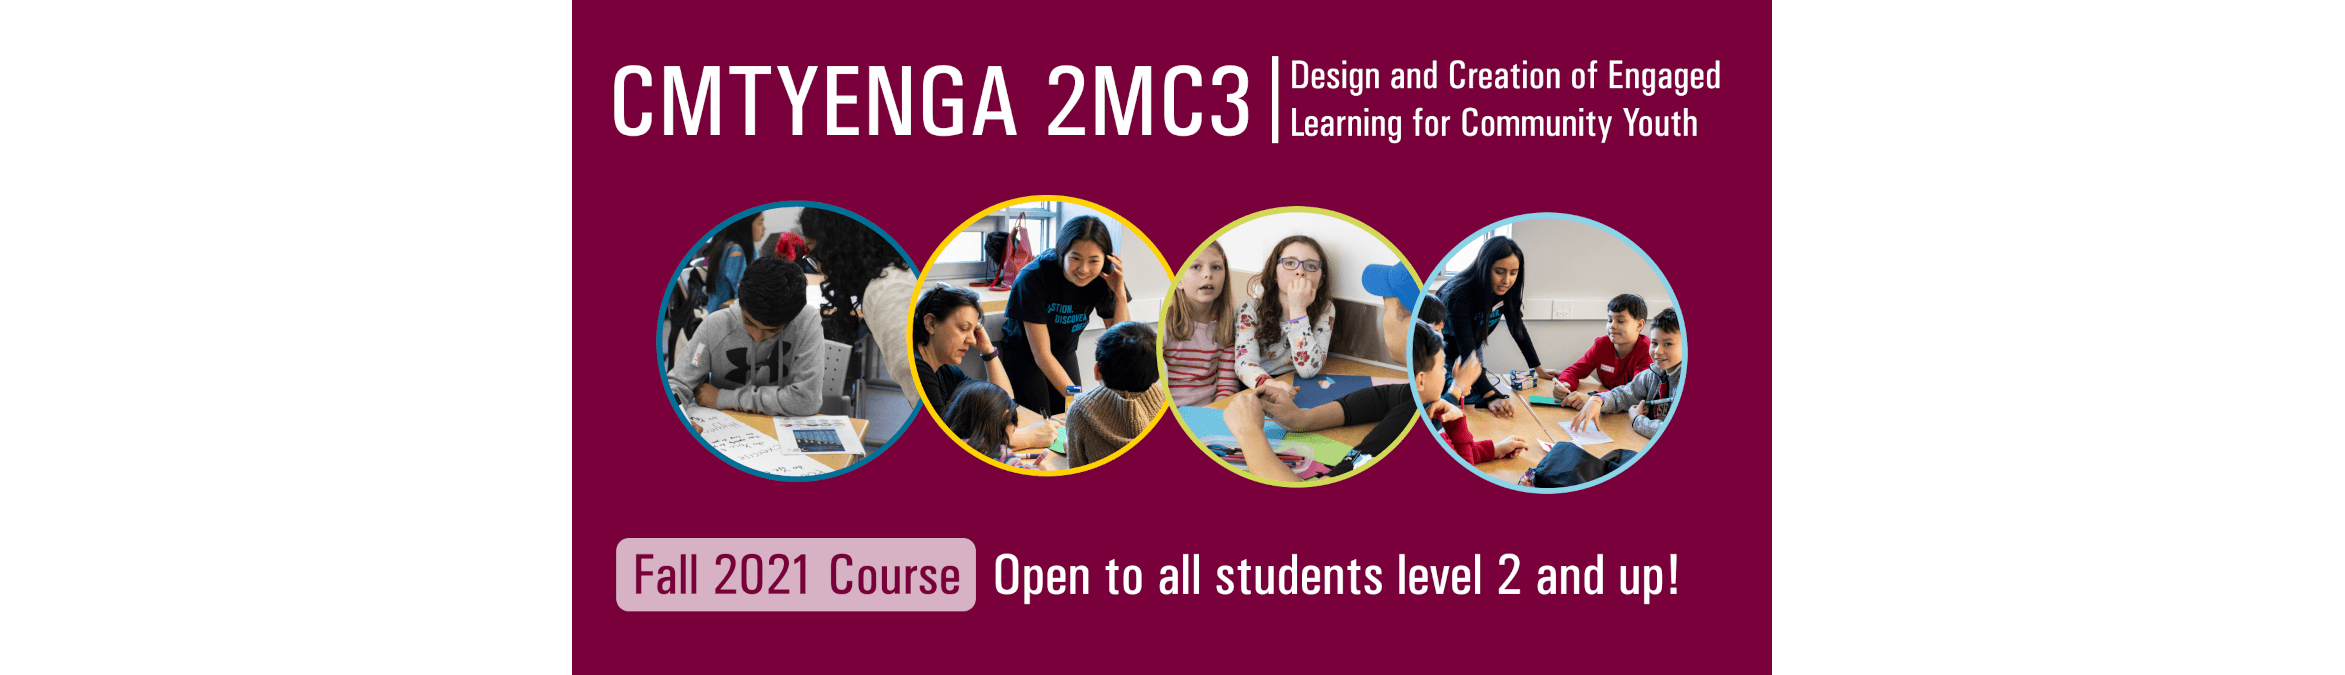 CMTYENGA 2MC3 Design and Creation of Engaged Learning for Community Youth. Fall 2021 Course, open to all students level 2 and up!